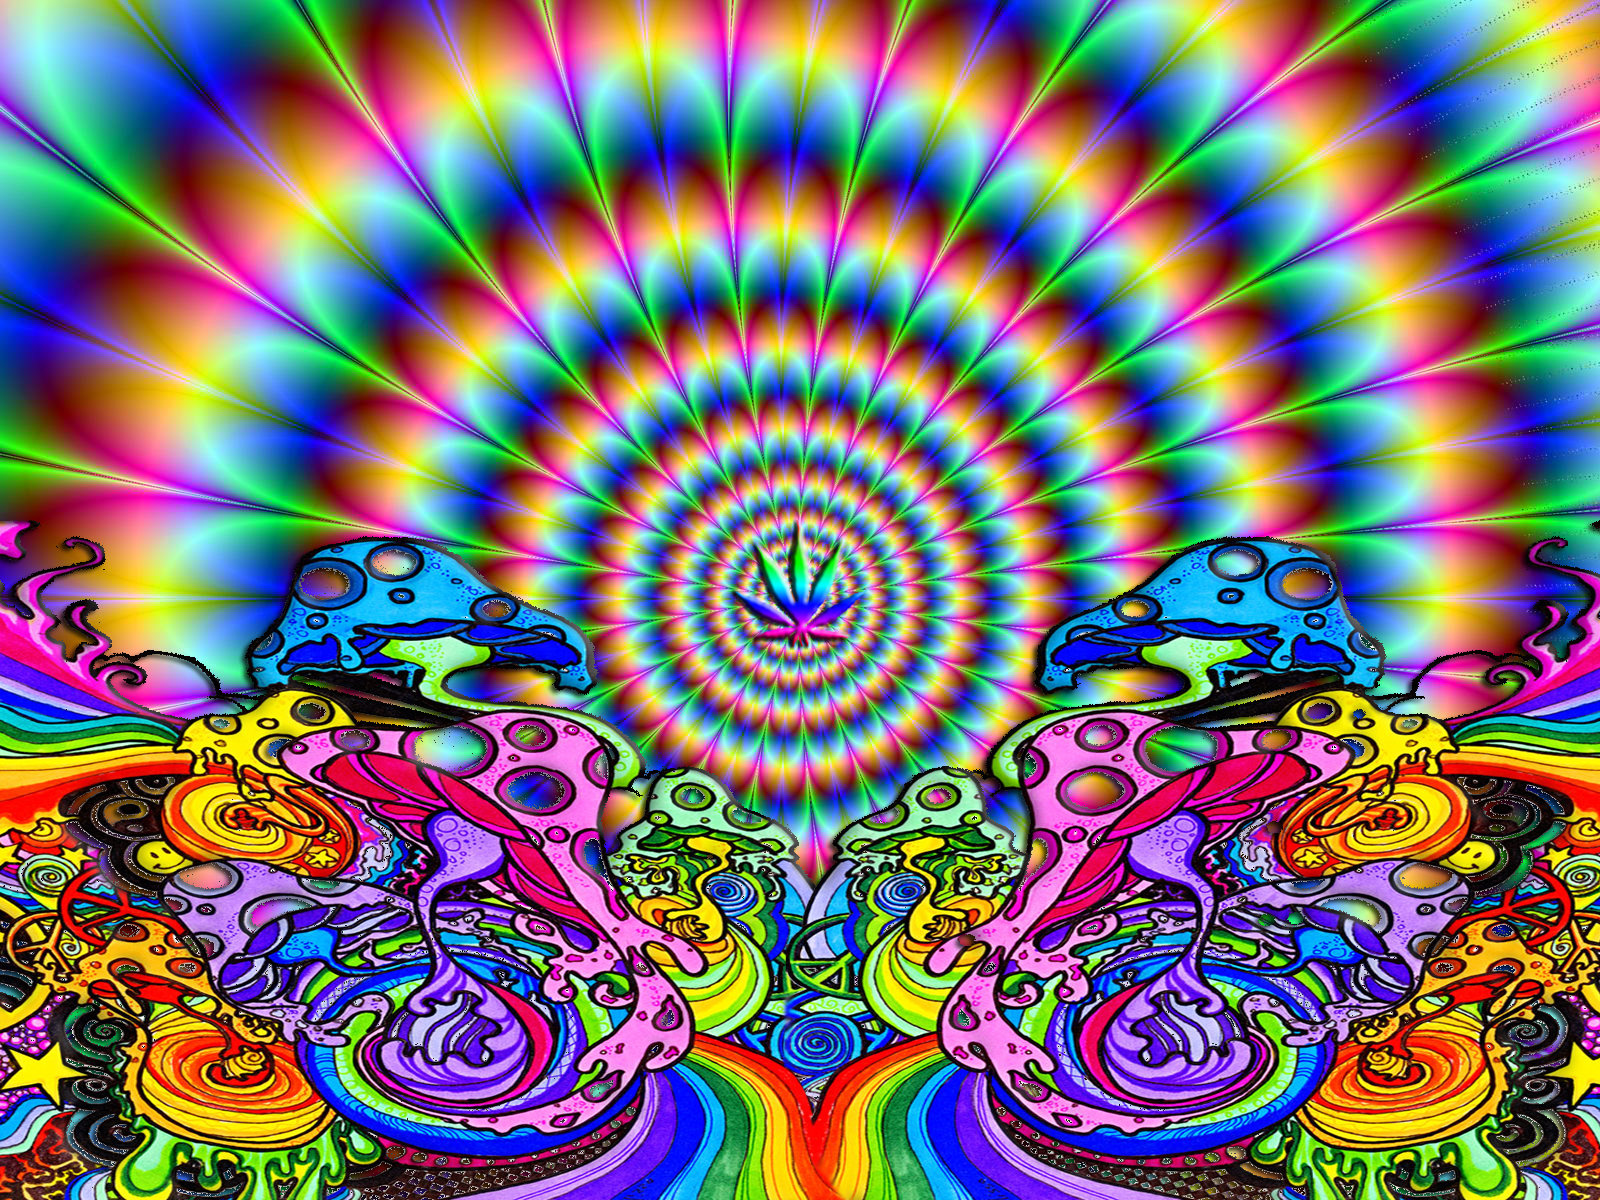 Trippy Wallpaper Art | Free Download Wallpaper | DaWallpaperz